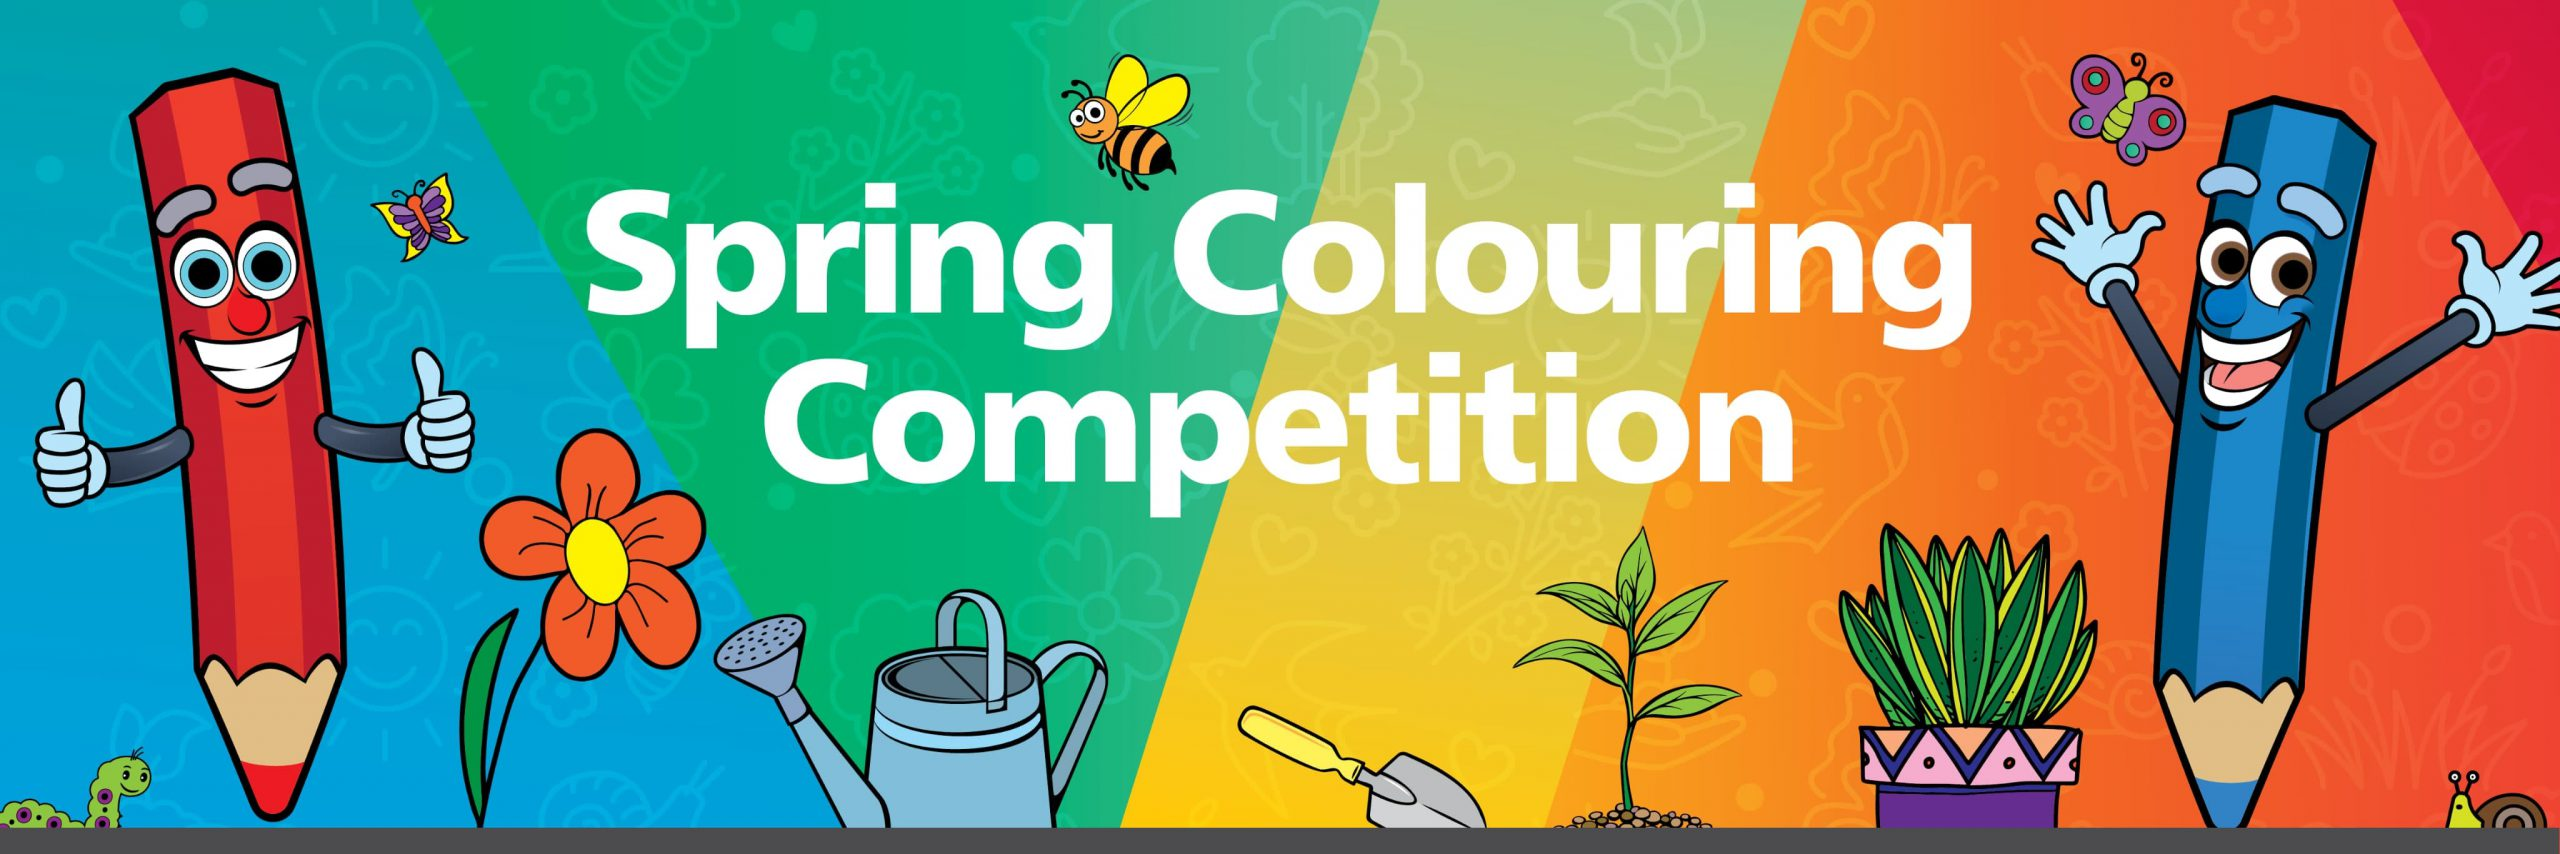 Spring Colouring Competition